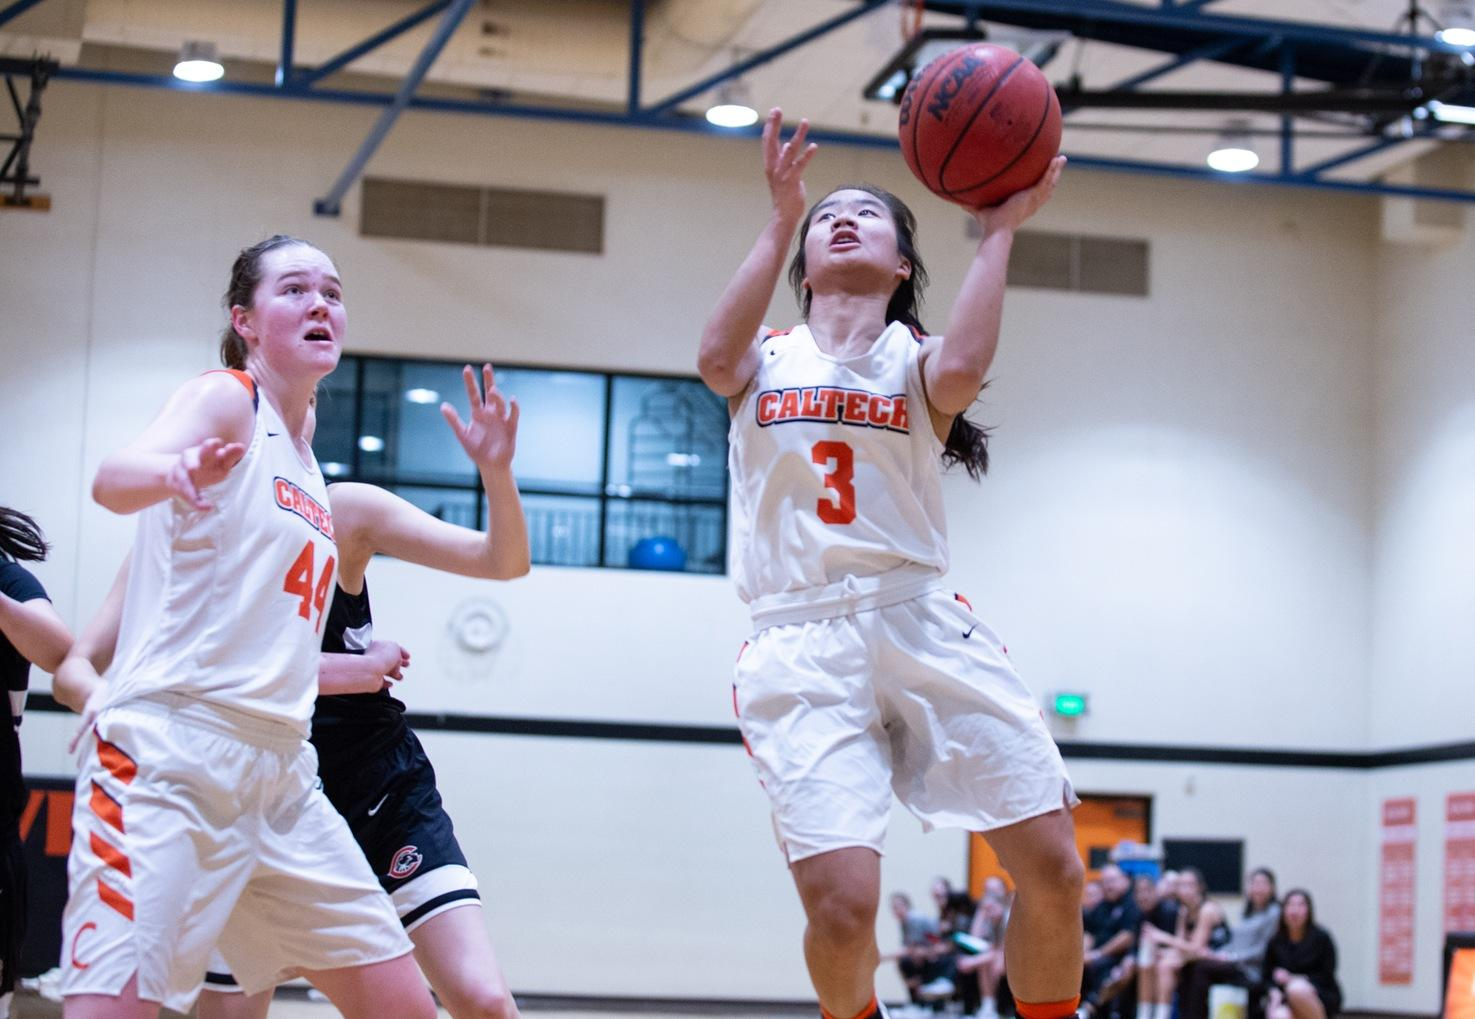 Caltech Hangs on at Oxy, Clinches Winningest Season Ever